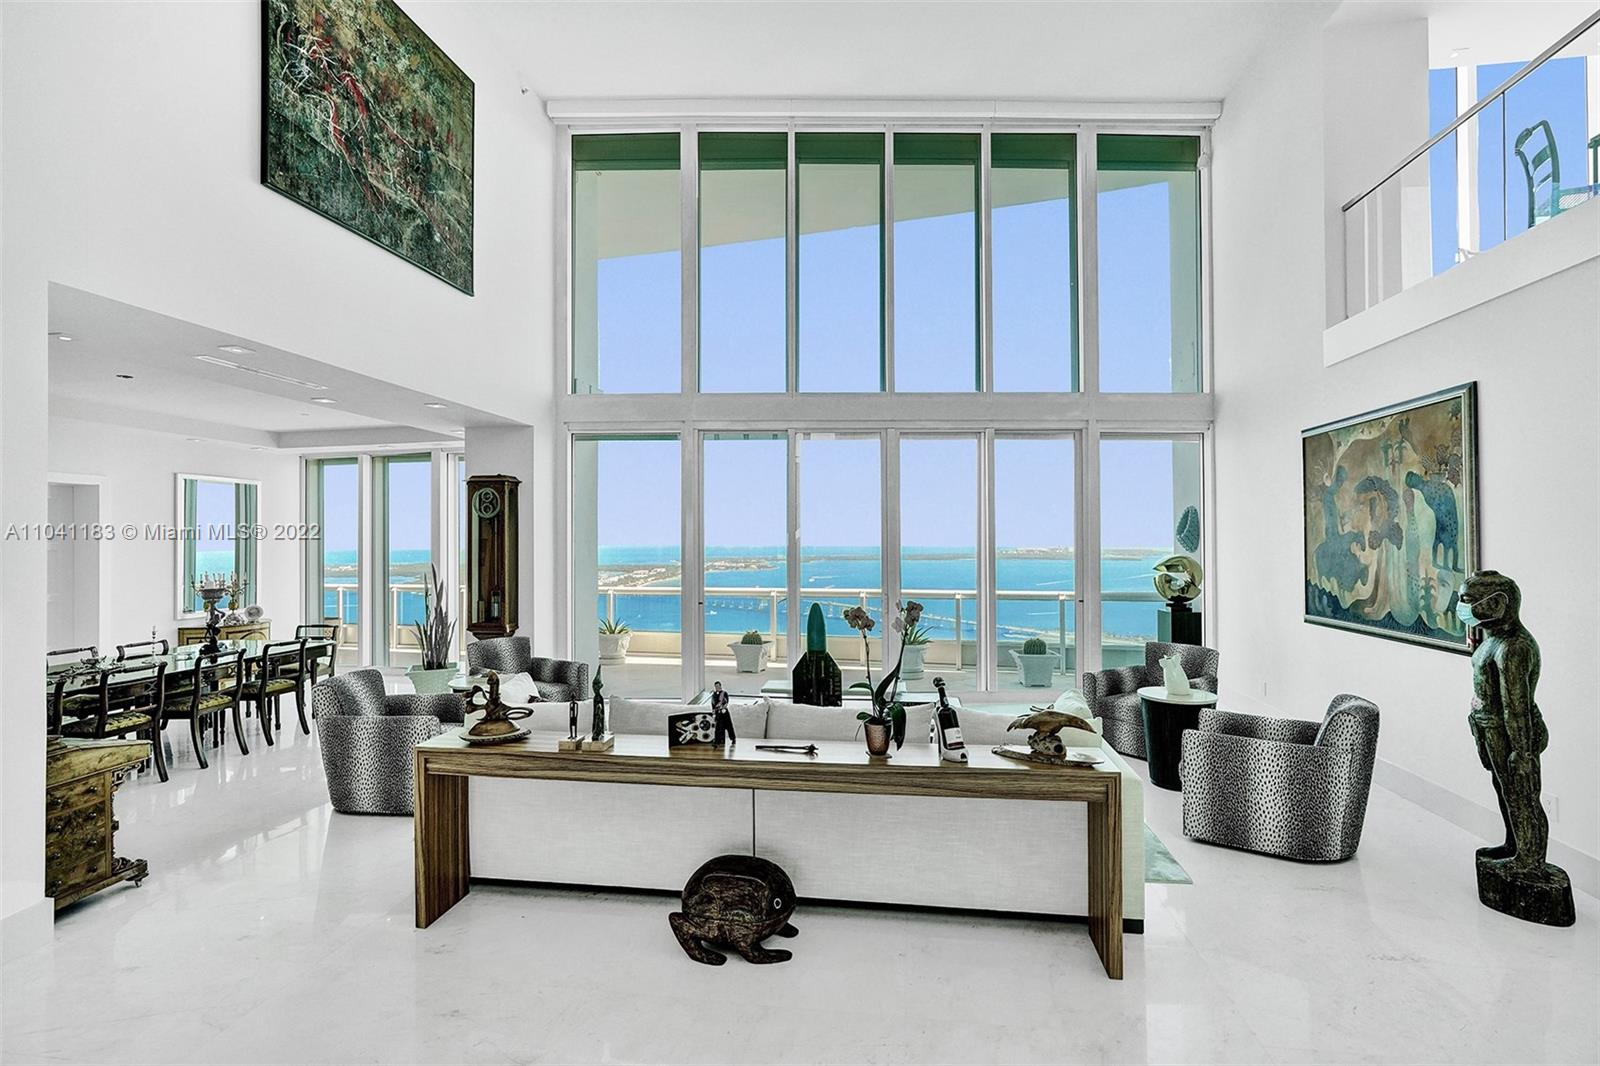 Spectacular views with Miami's sparkling skyline at your feet!  That is the best description of what one sees from this stunning two story, luxury-laden penthouse in one of Miami's top  condominium buildings!  From the two-story, sun drenched living room to the sparkling waters of your private rooftop pool atop the 50th floor of the Santa Maria, no detail has been overlooked to provide luxurious, convenient living at its best. The 2020 kitchen is supported with a full walk- in storage  pantry, as well as an adjacent  butler's pantry and wine room.   Additionally, one will find a spacious entertainment area adjacent to the pool, a large family room, 6 bedrooms 8 baths, a library/office, formal dining room  and private foyer entry. Also included are 4 parking spaces.